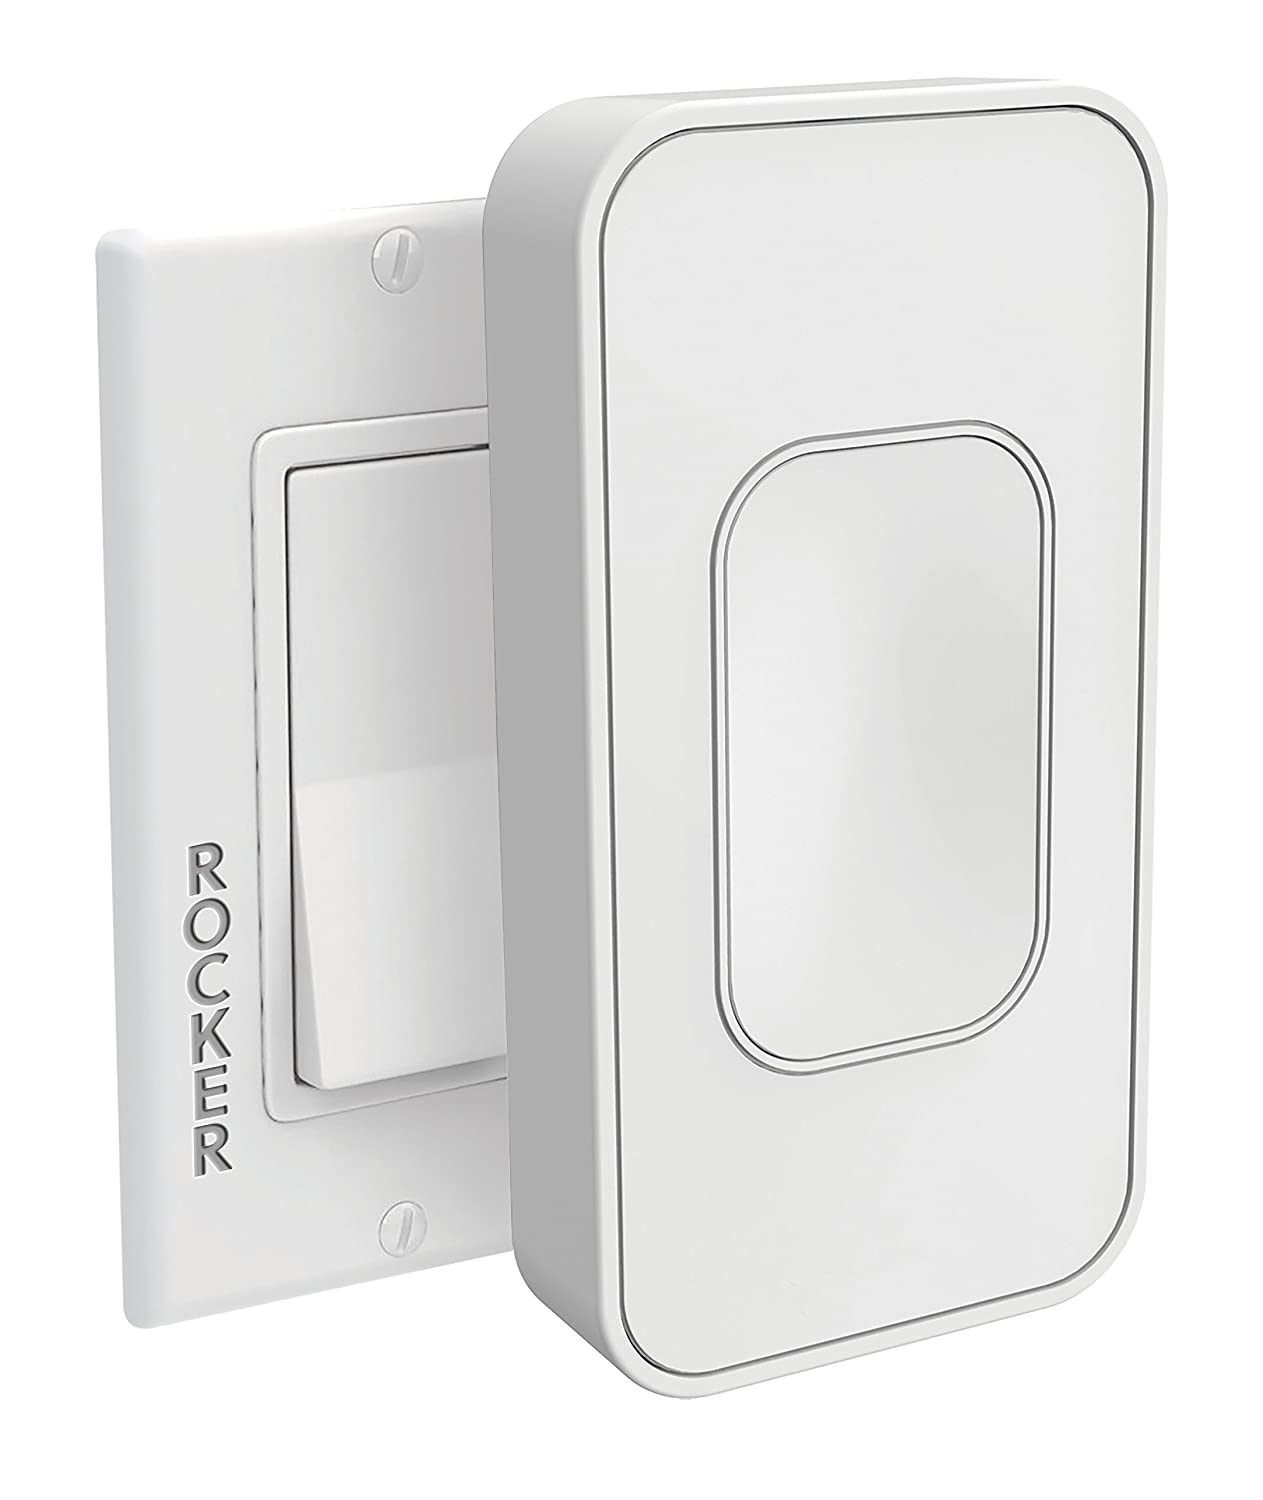 Amazon.com: Switchmate Snap-On Instant Smart Light Switch That ...